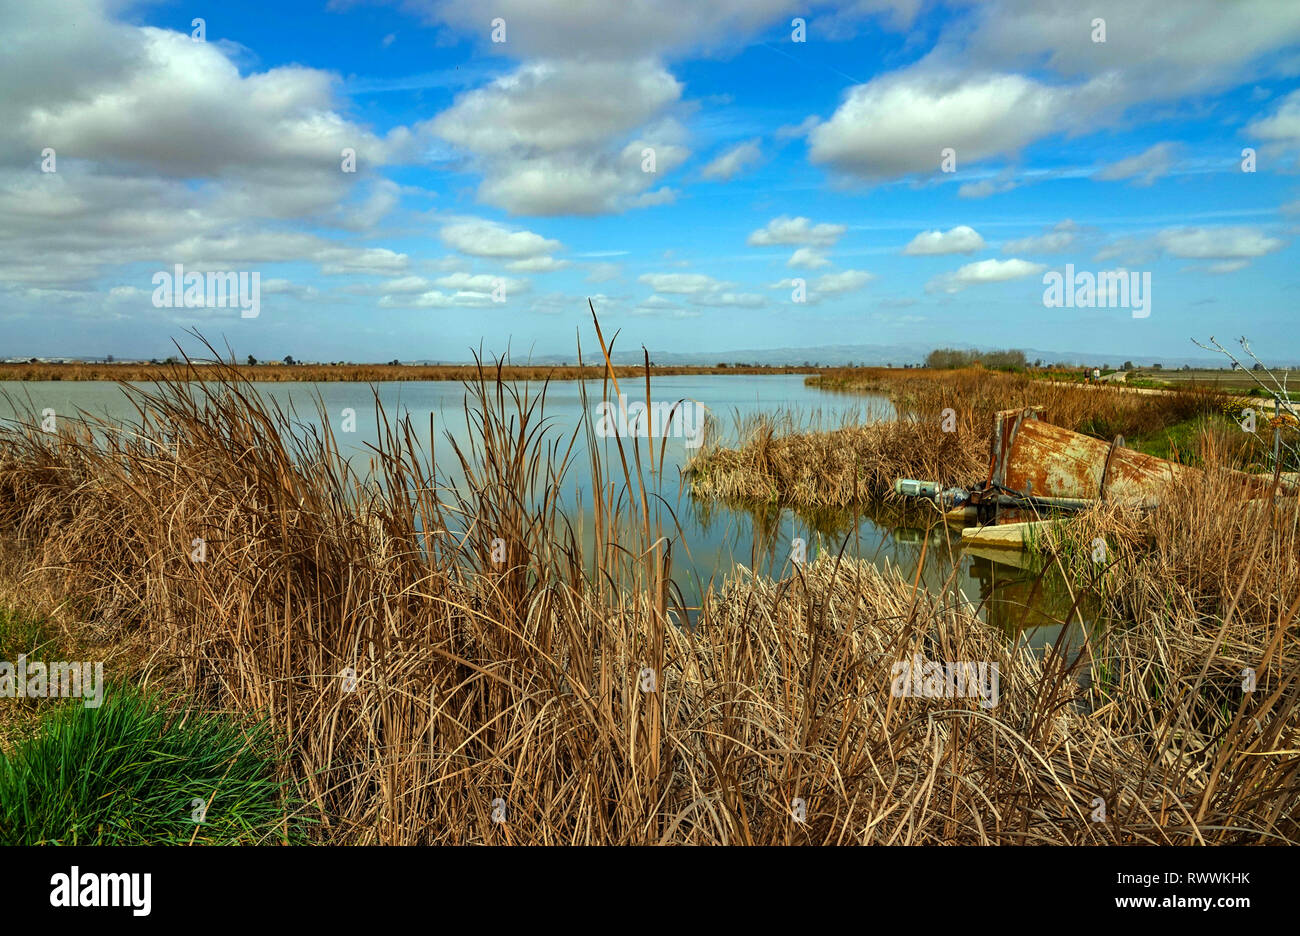 Wide open spaces, lakes and reed-beds, The Ebro Delta nature reserve, near Amposta, Catalunya, Spain Stock Photo